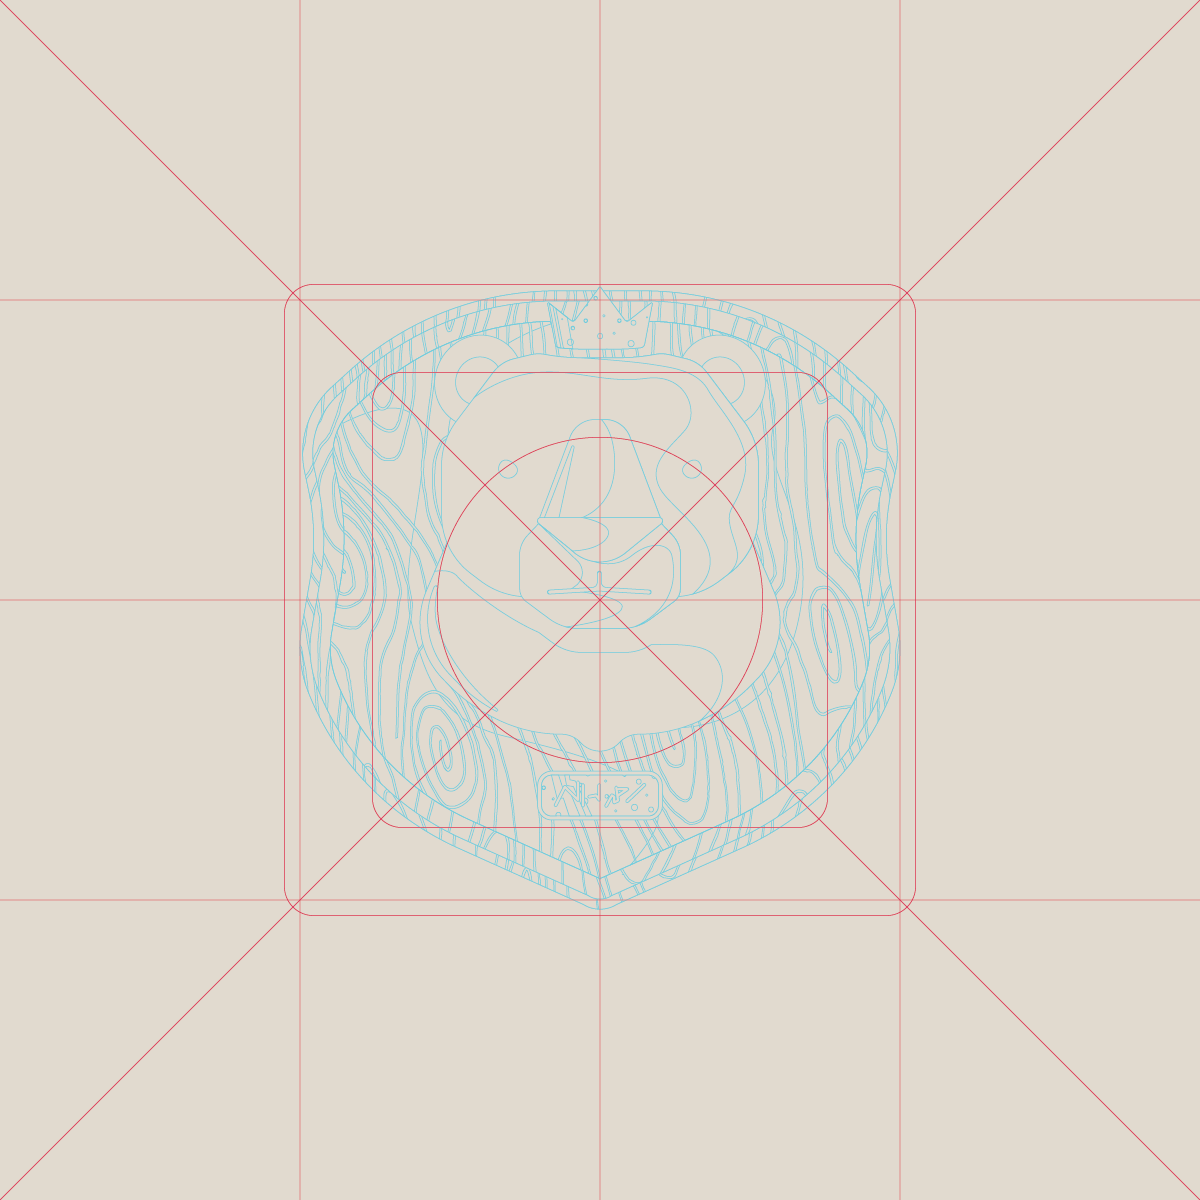 001 oso grid lines 01